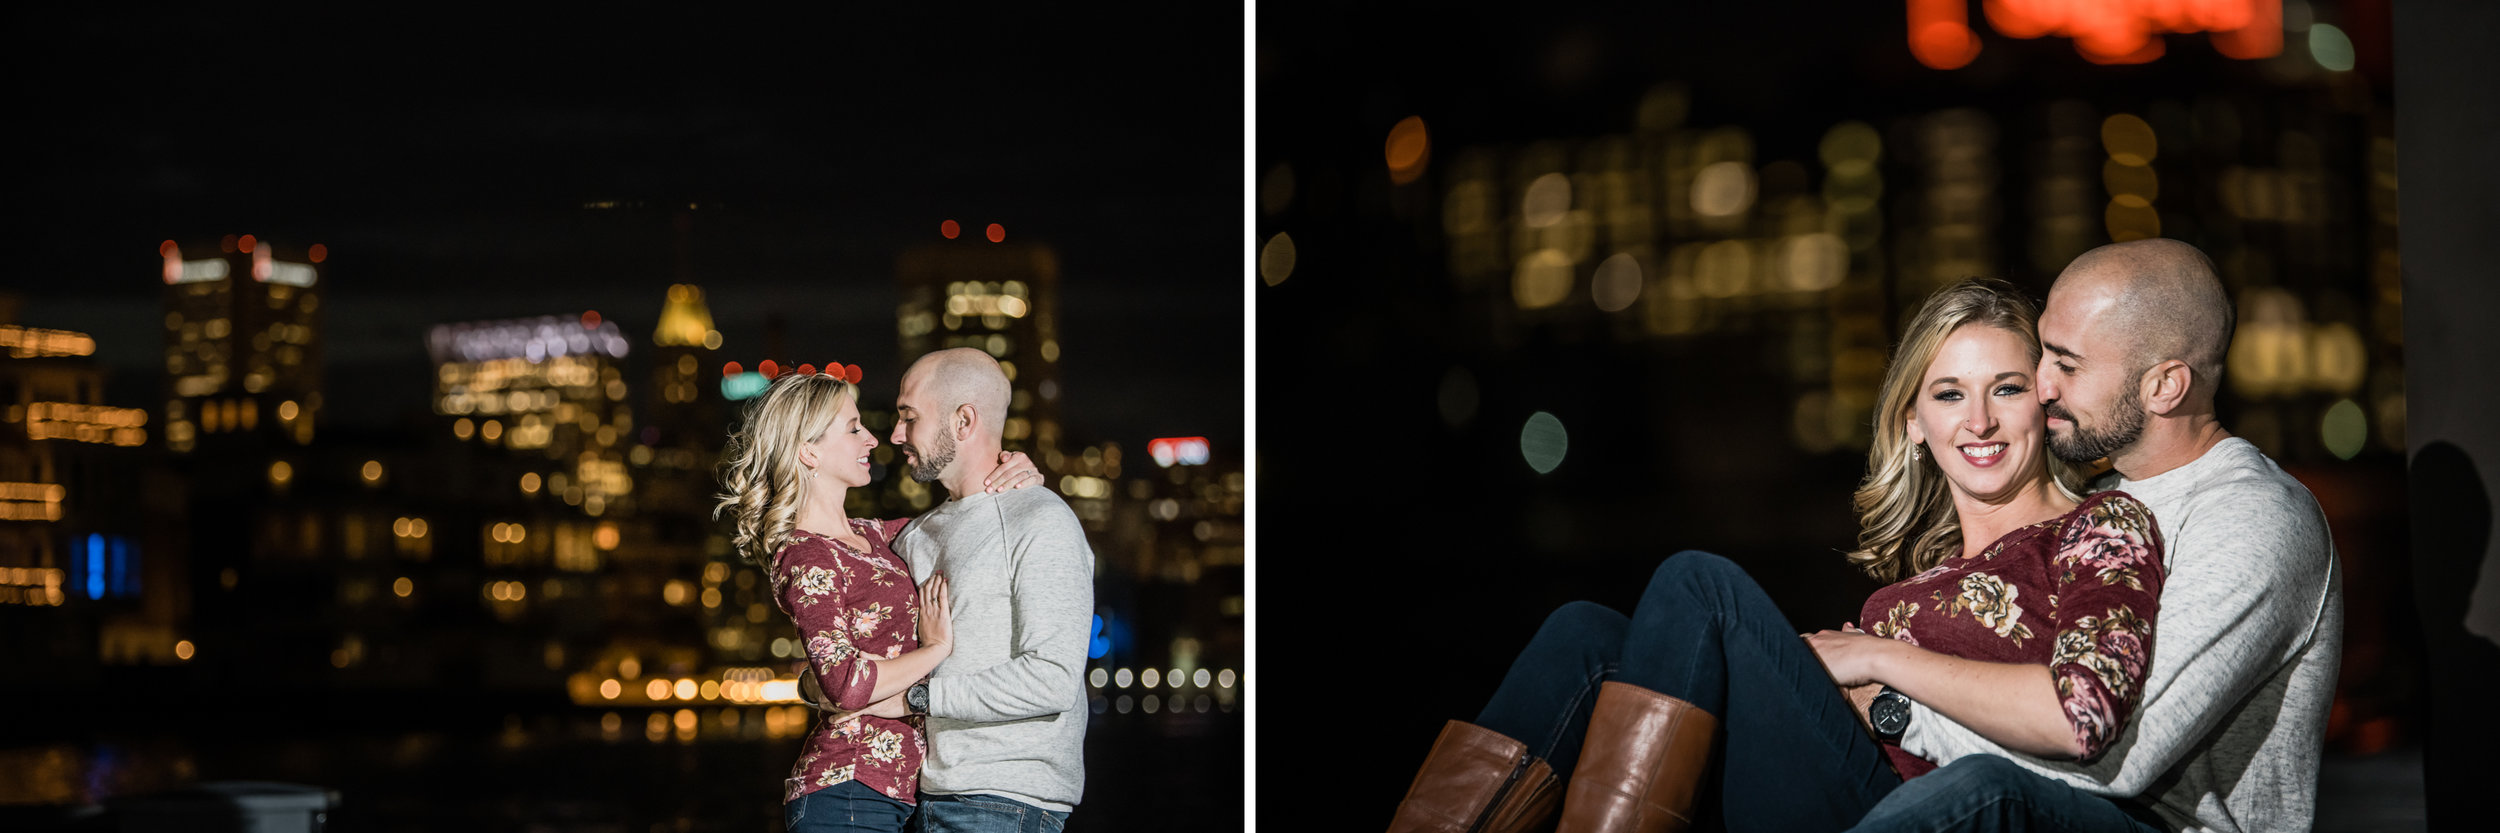 Engagement session in Baltimore